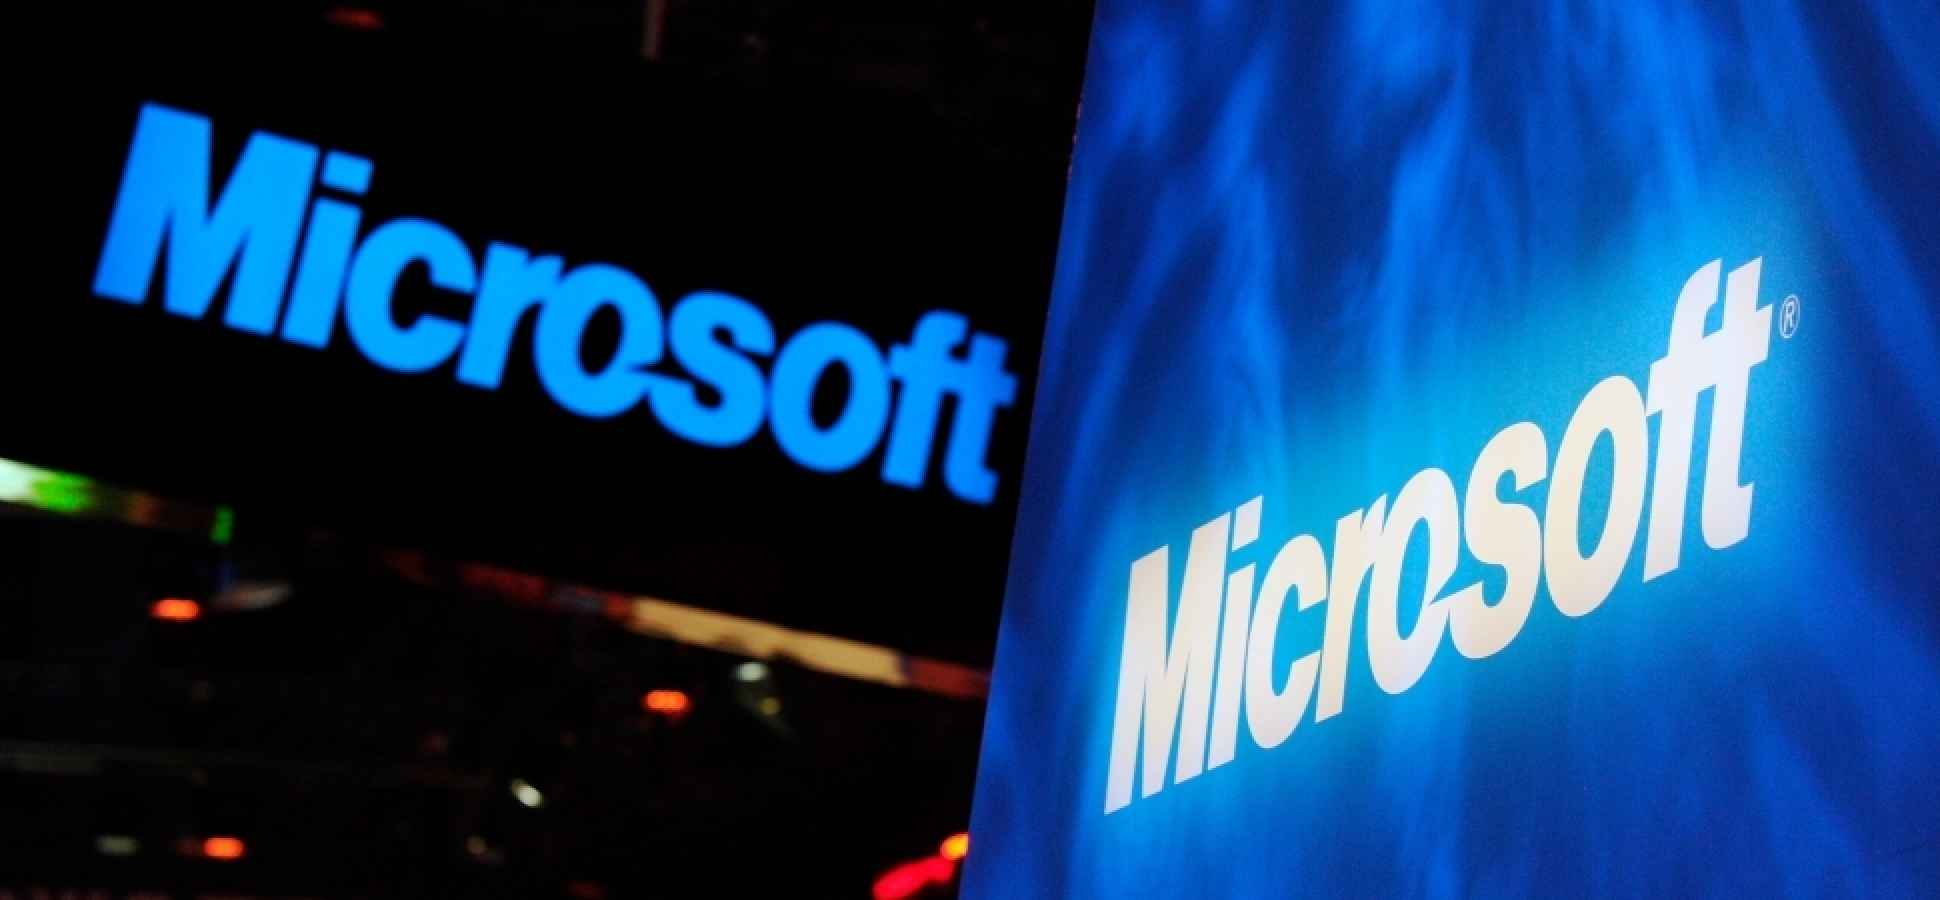 This Unusual Startup Strategy Led to a $200 Million Acquisition by Microsoft in 18 Months